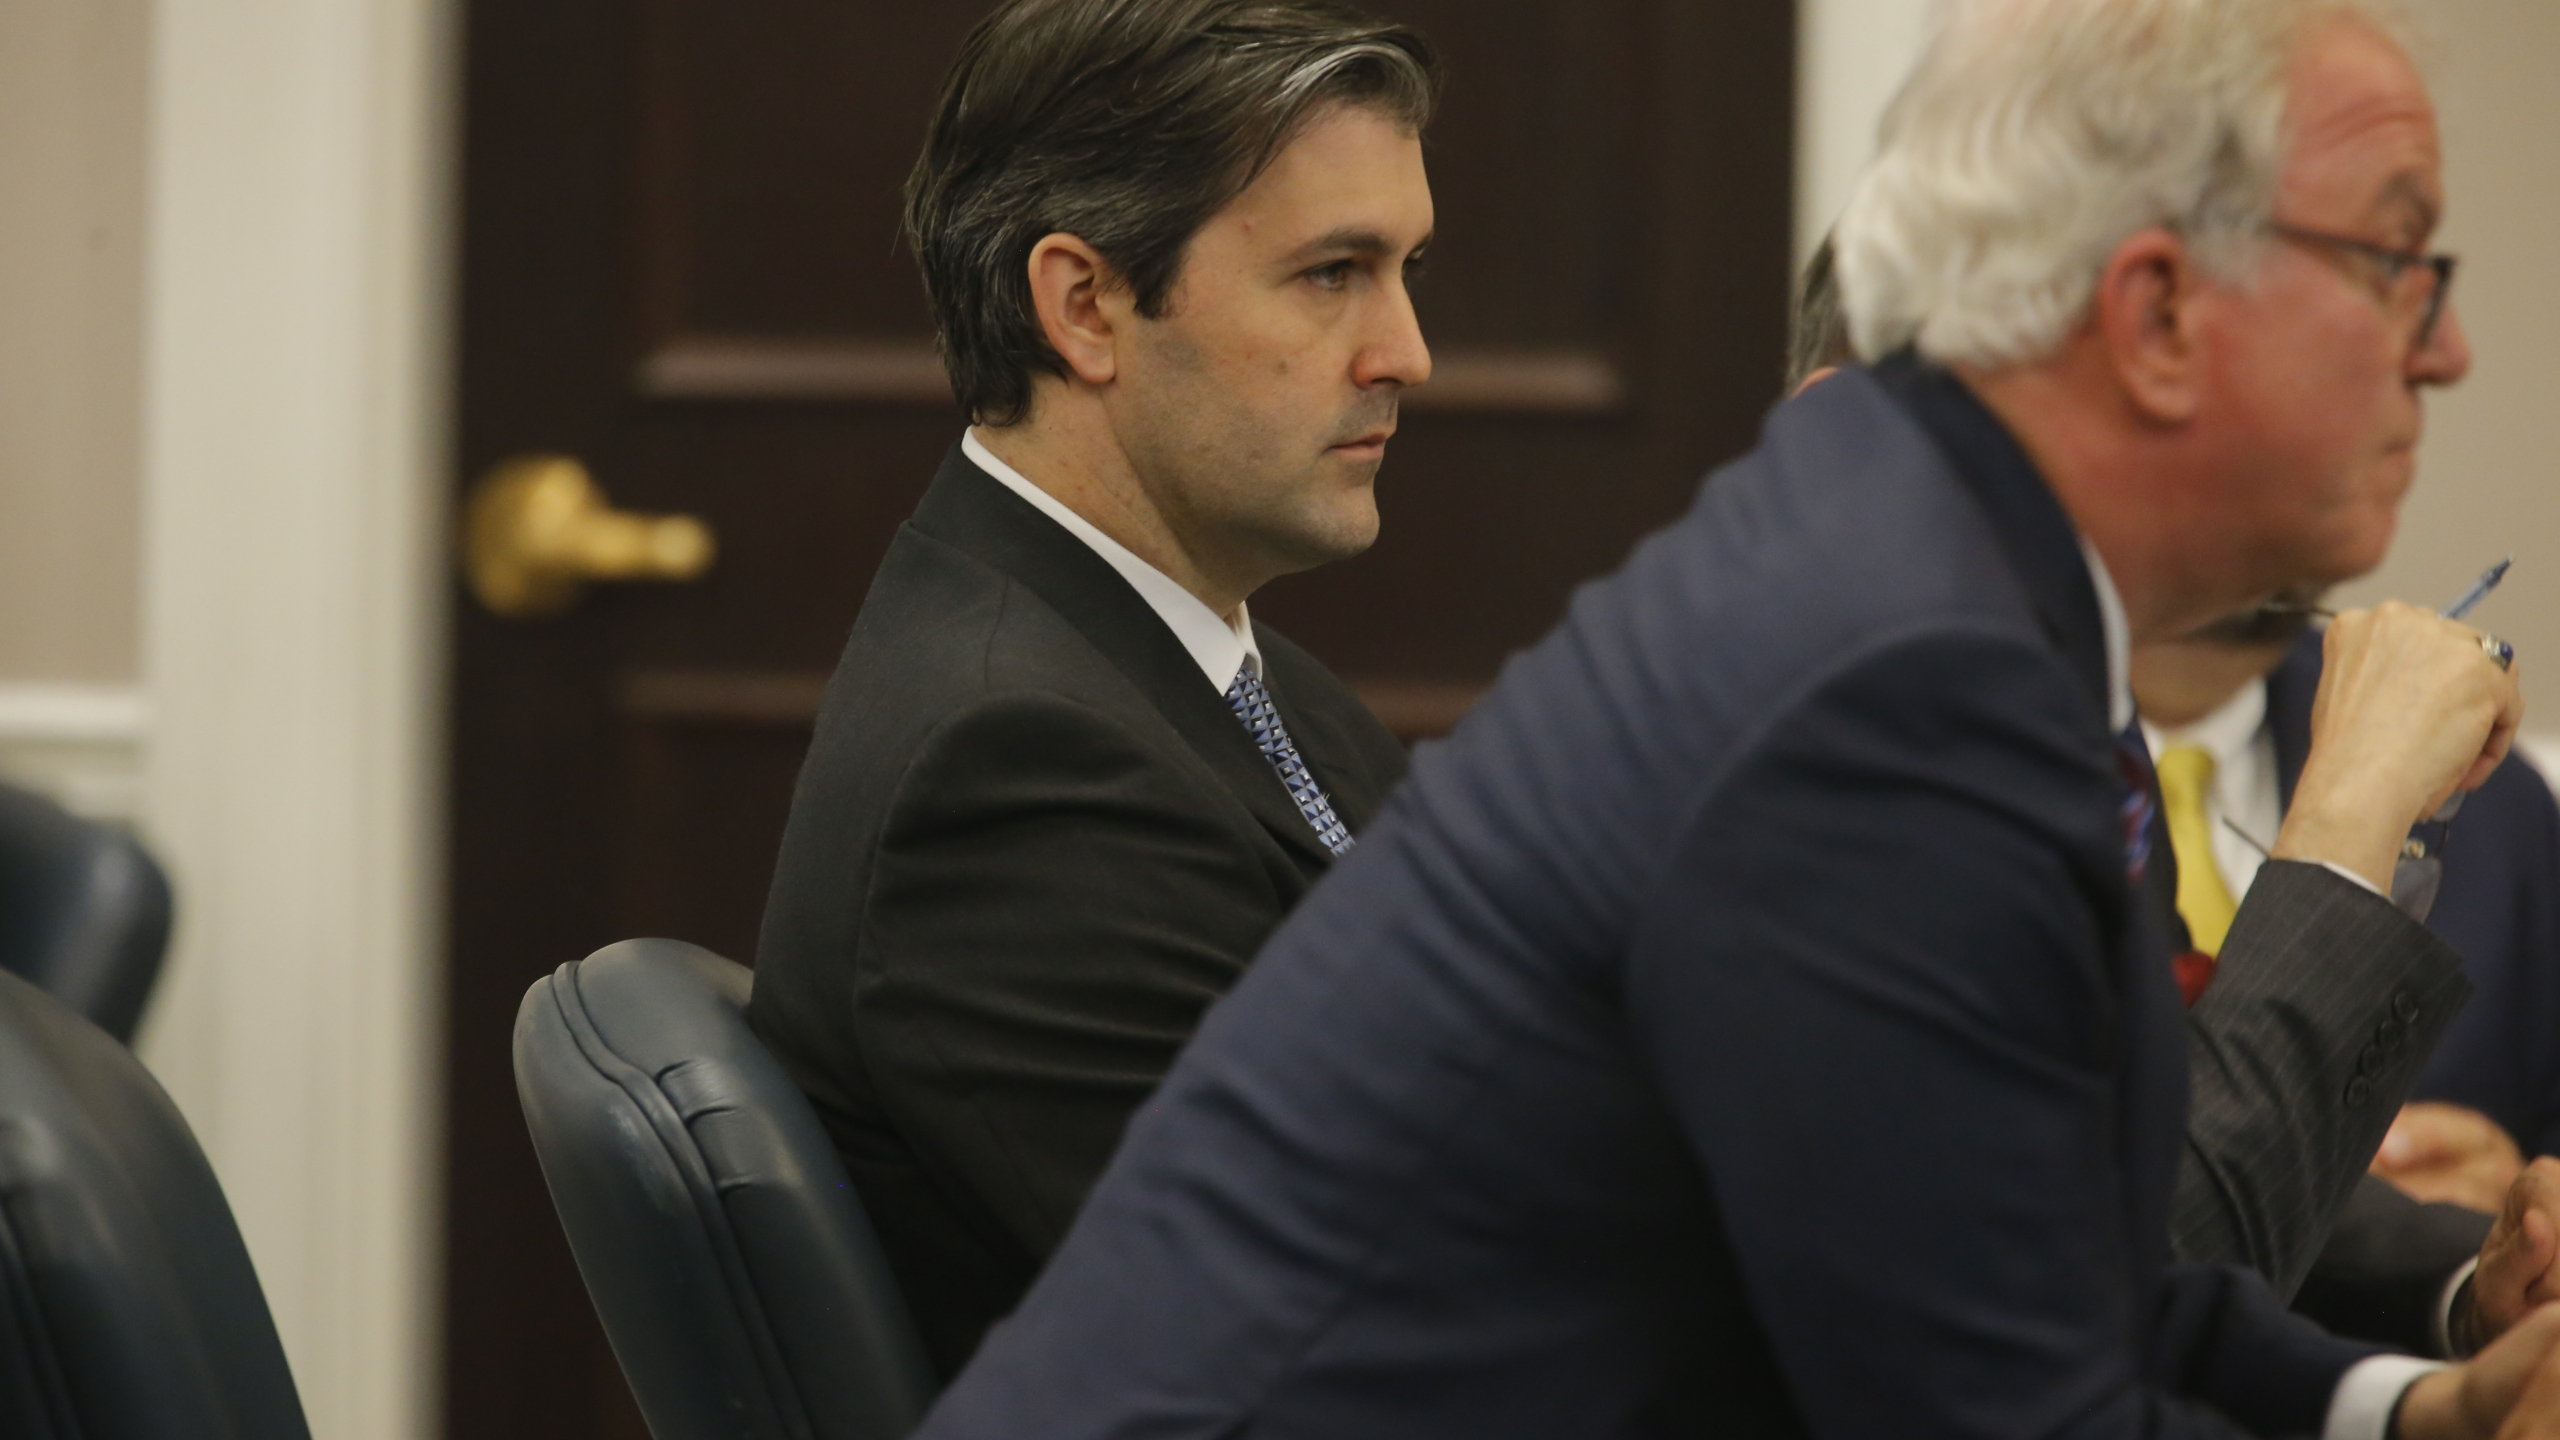 Former North Charleston police Officer Michael Slager listens as Judge Clifton Newman declares a mistrial at the Charleston County court in Charleston, South Carolina, Dec. 5, 2016. (Credit: Grace Beahm - Pool/Getty Images)